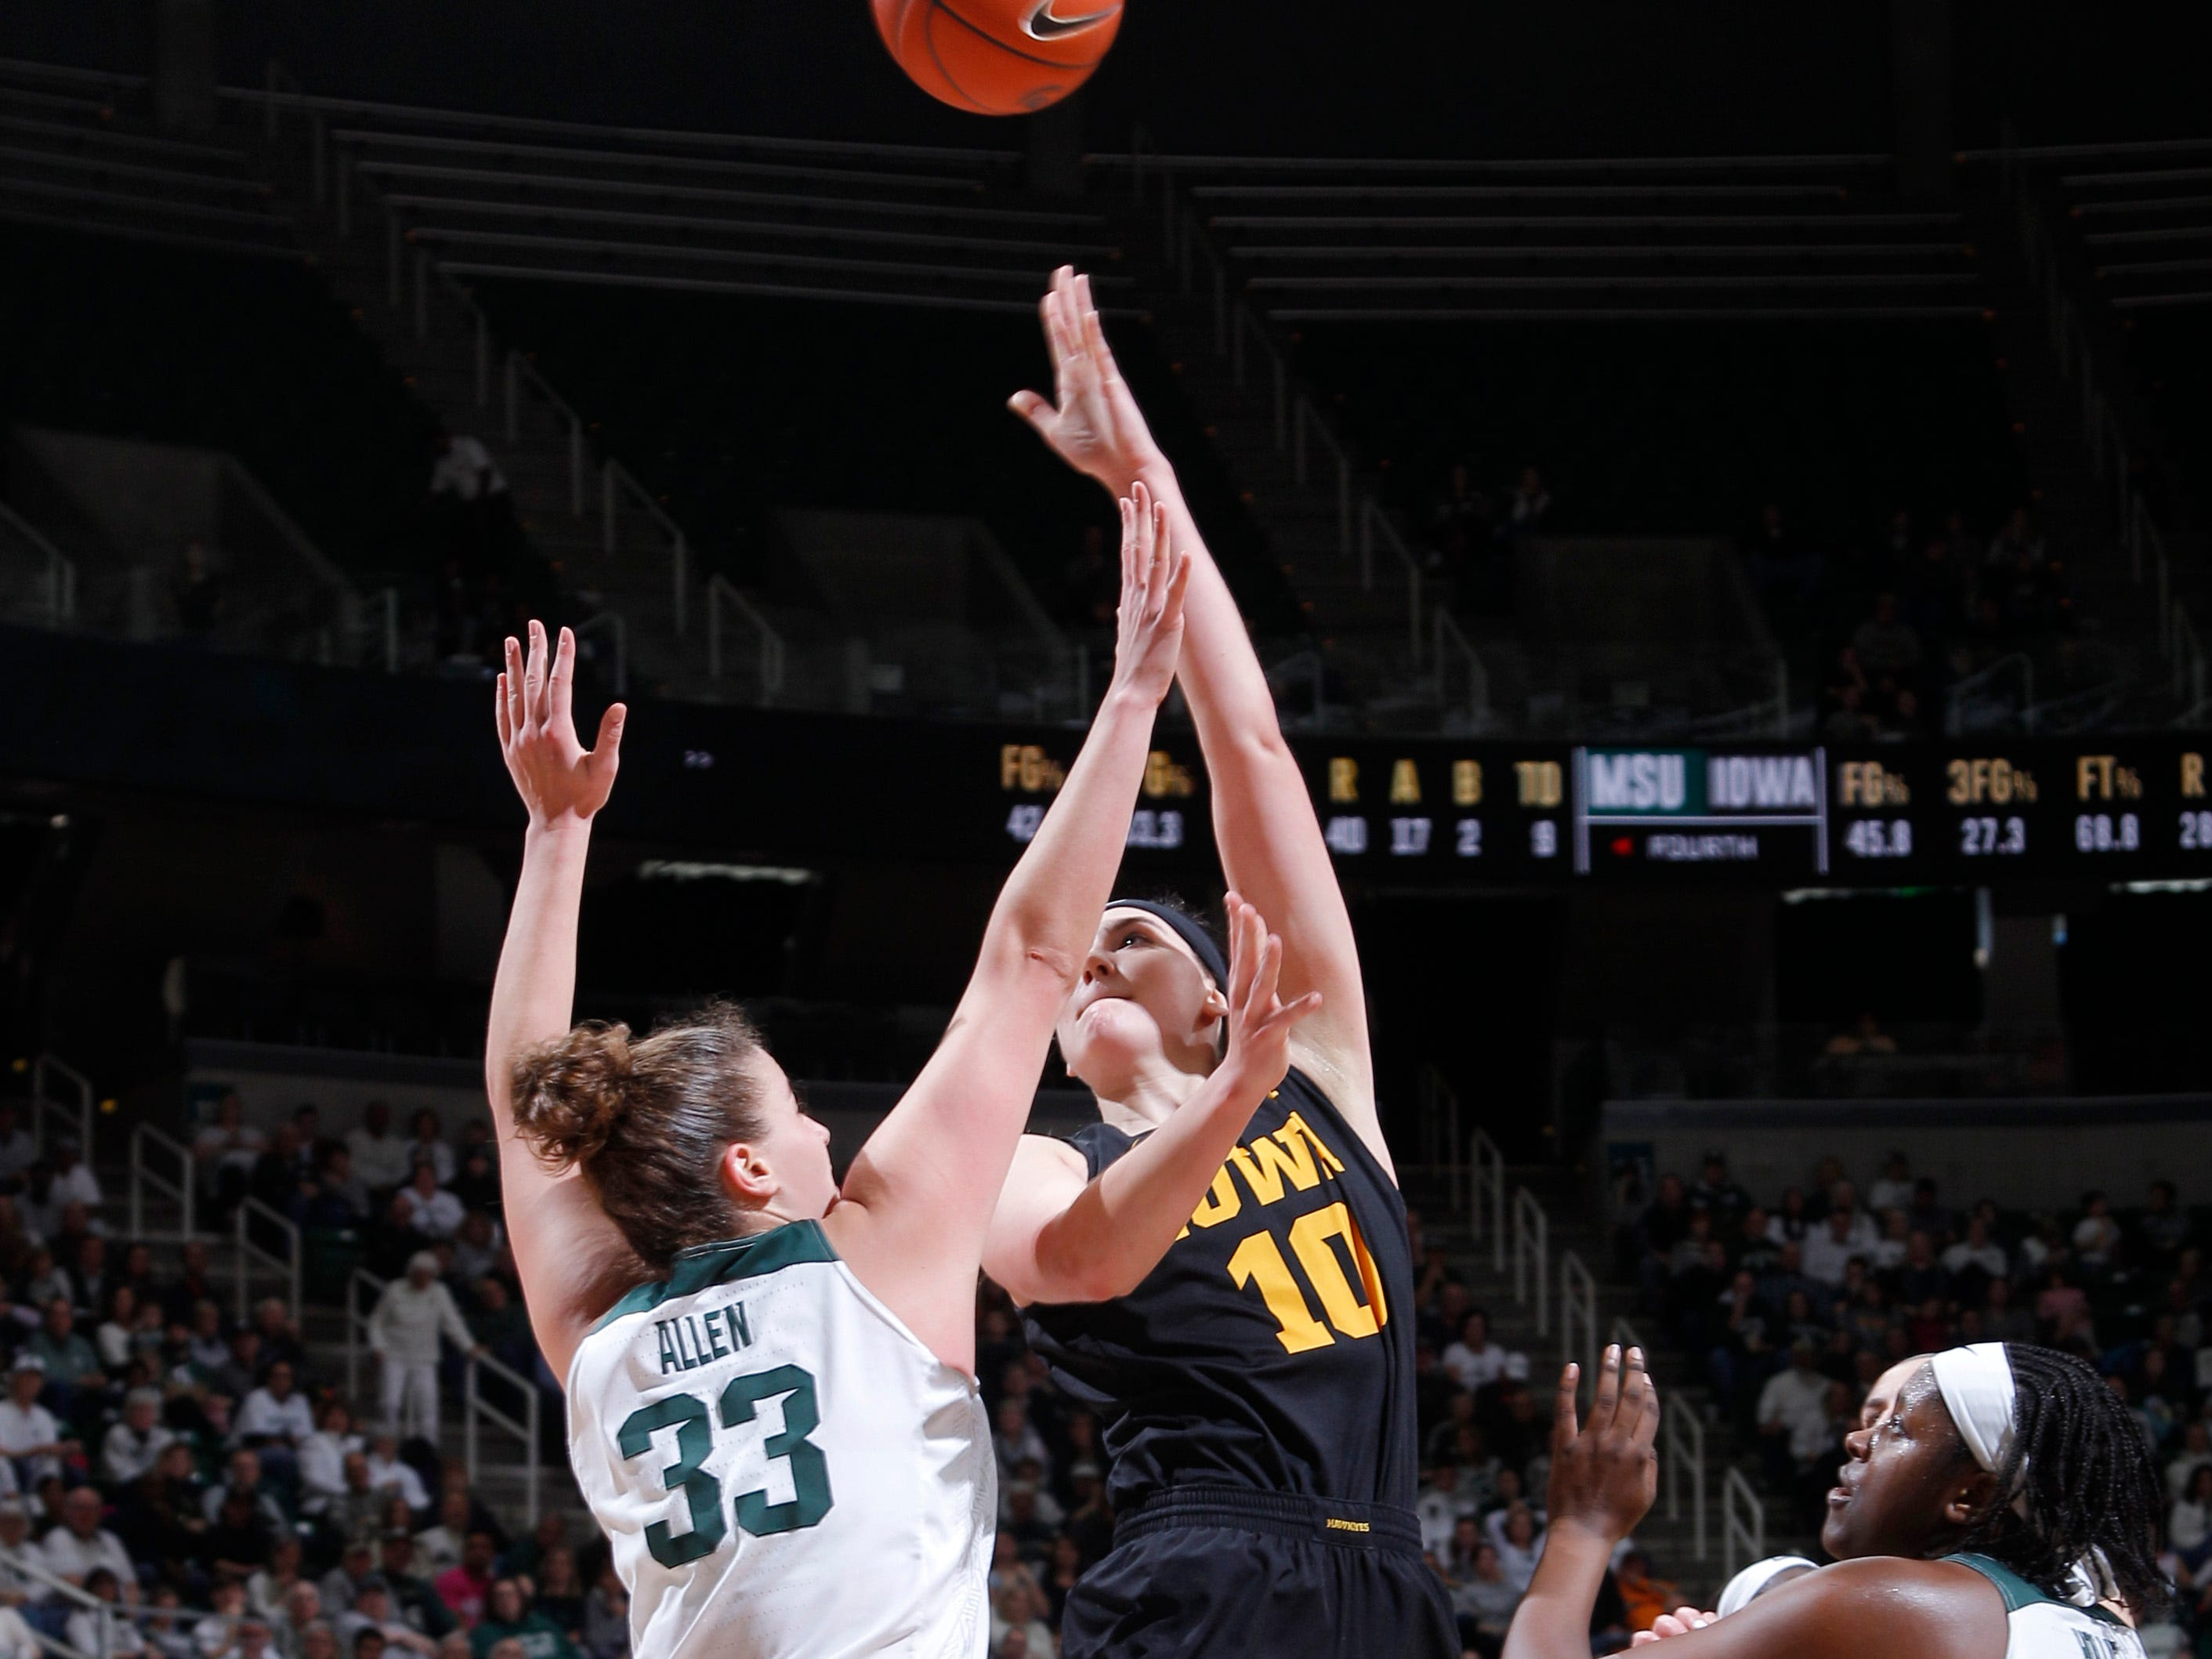 Iowa's Megan Gustafson (10) puts up a shot against Michigan State's Jenna Allen (33) and Nia Hollie (12) during an NCAA college basketball game, Sunday, Dec. 30, 2018, in East Lansing, Mich. Michigan State won 84-70. (AP Photo/Al Goldis)